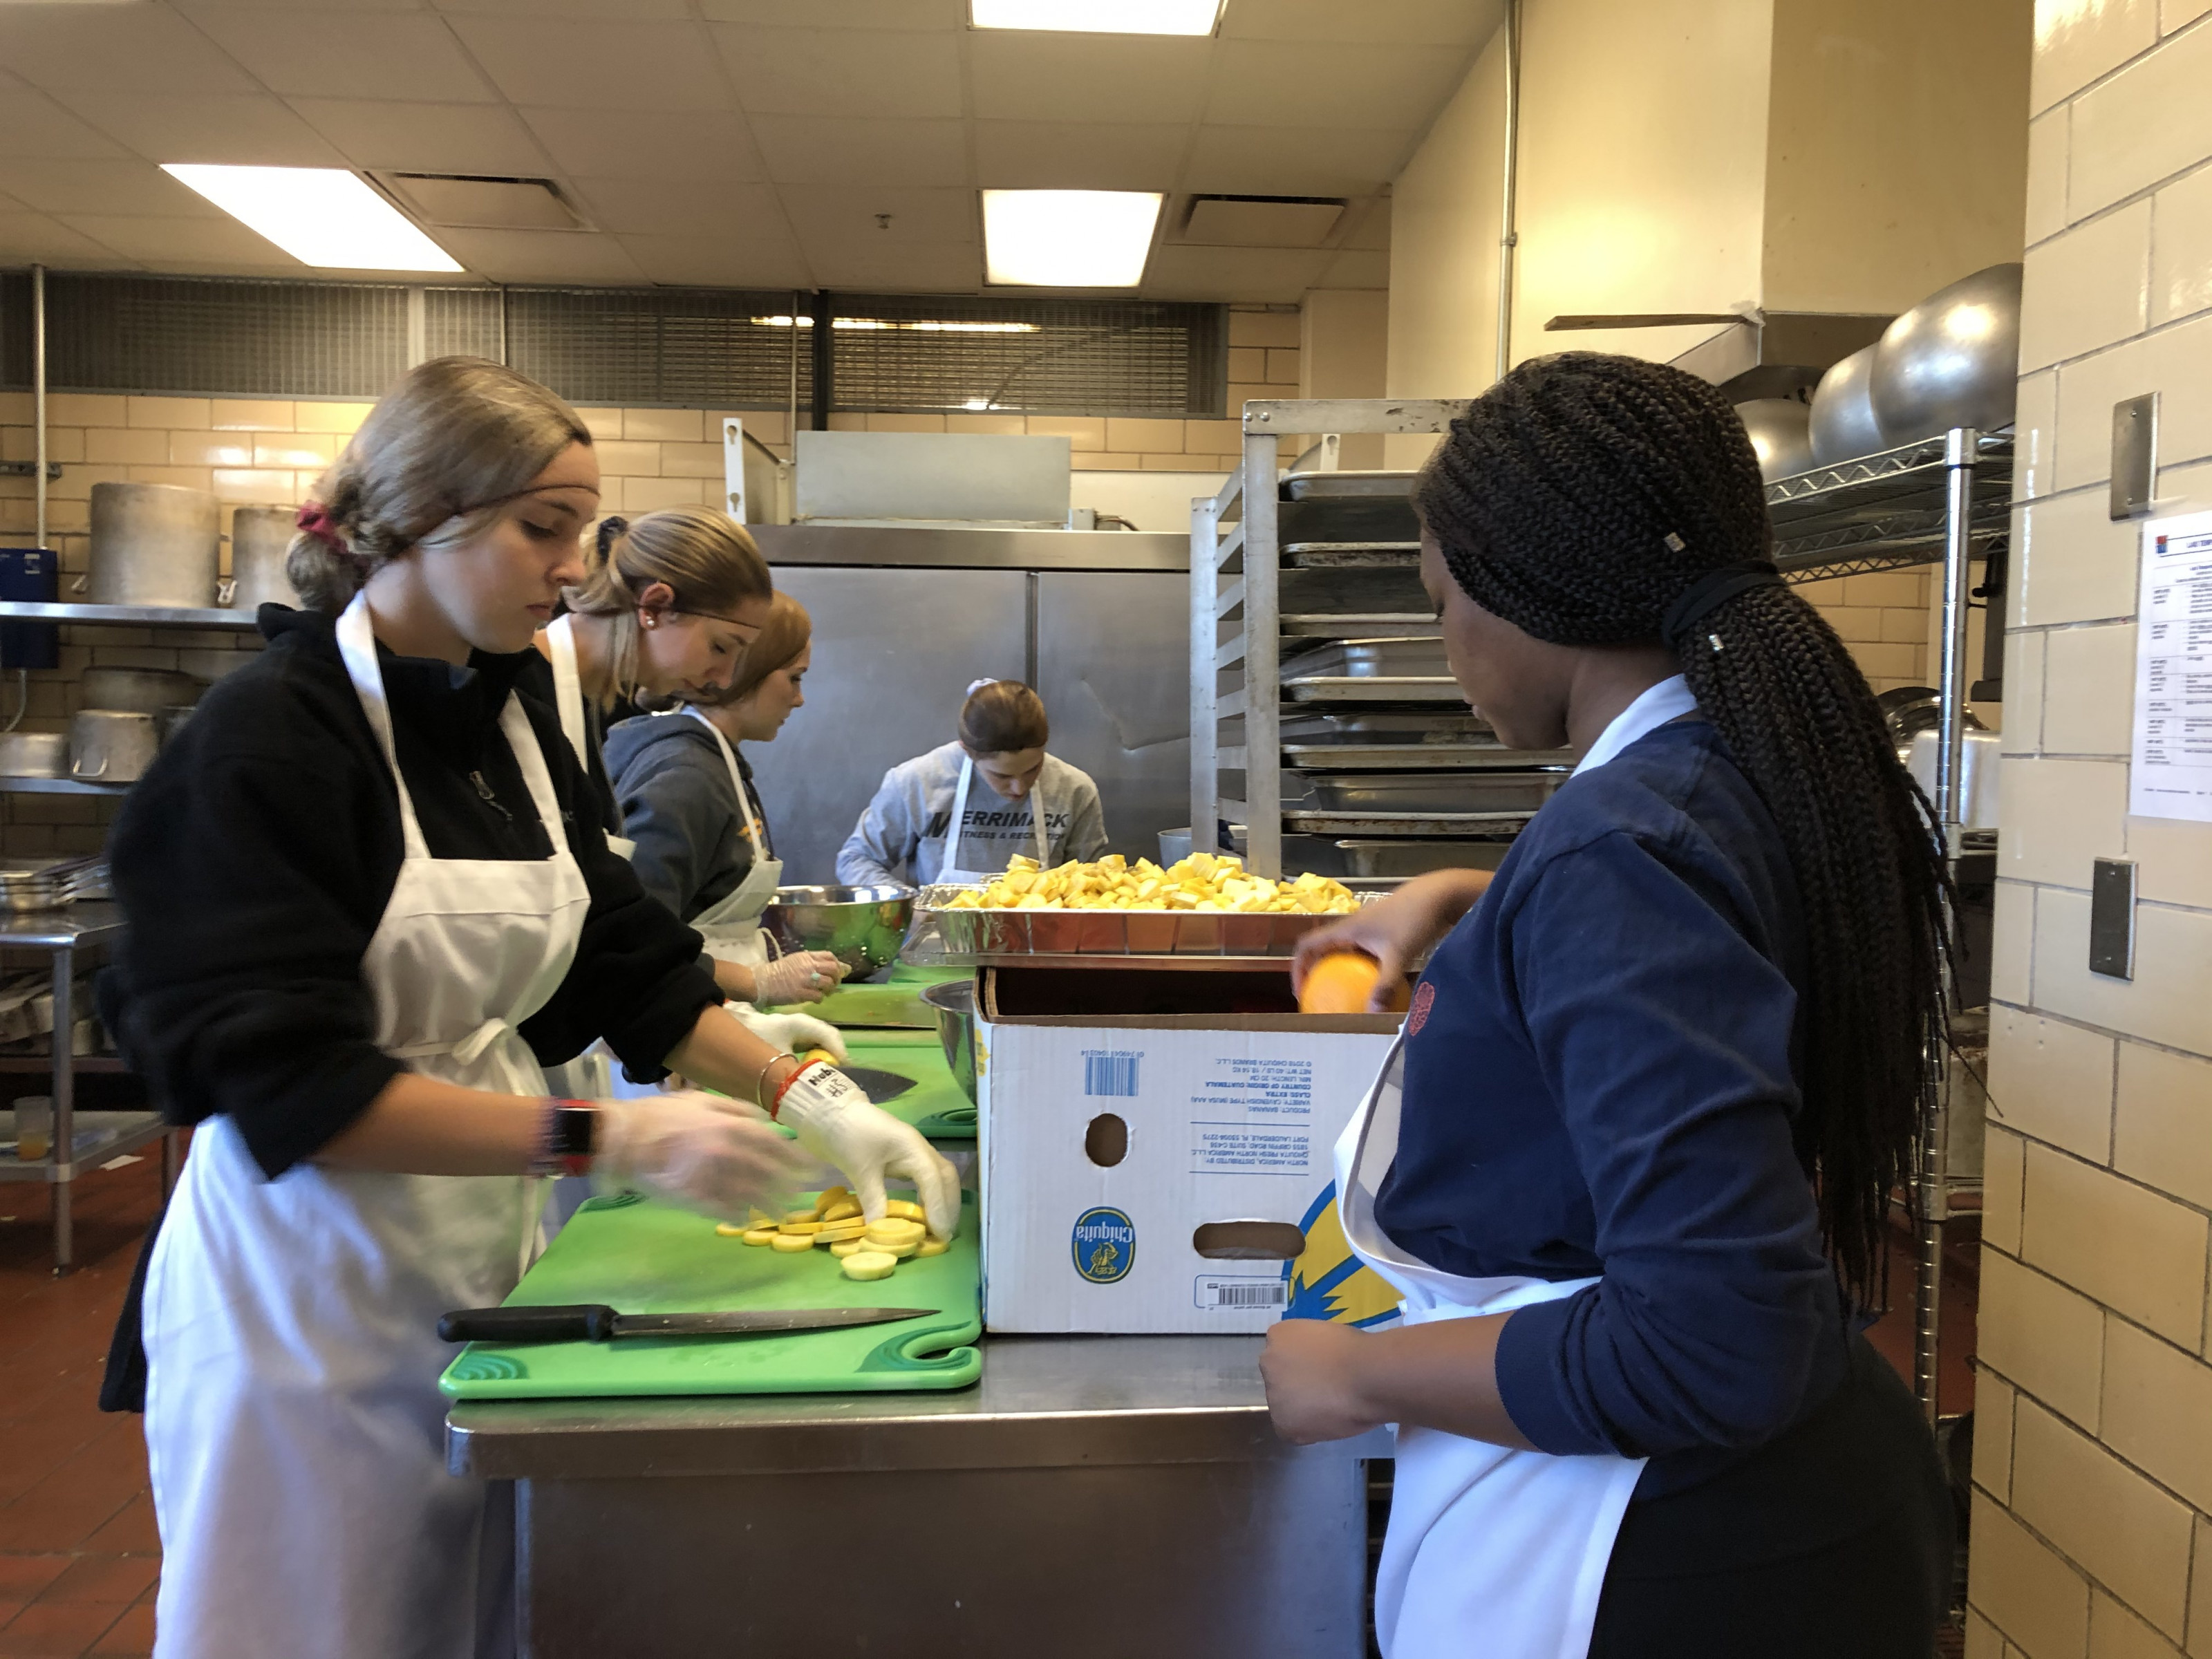 Students preparing food for Merrimack College's chapter of the Food Recovery Network.